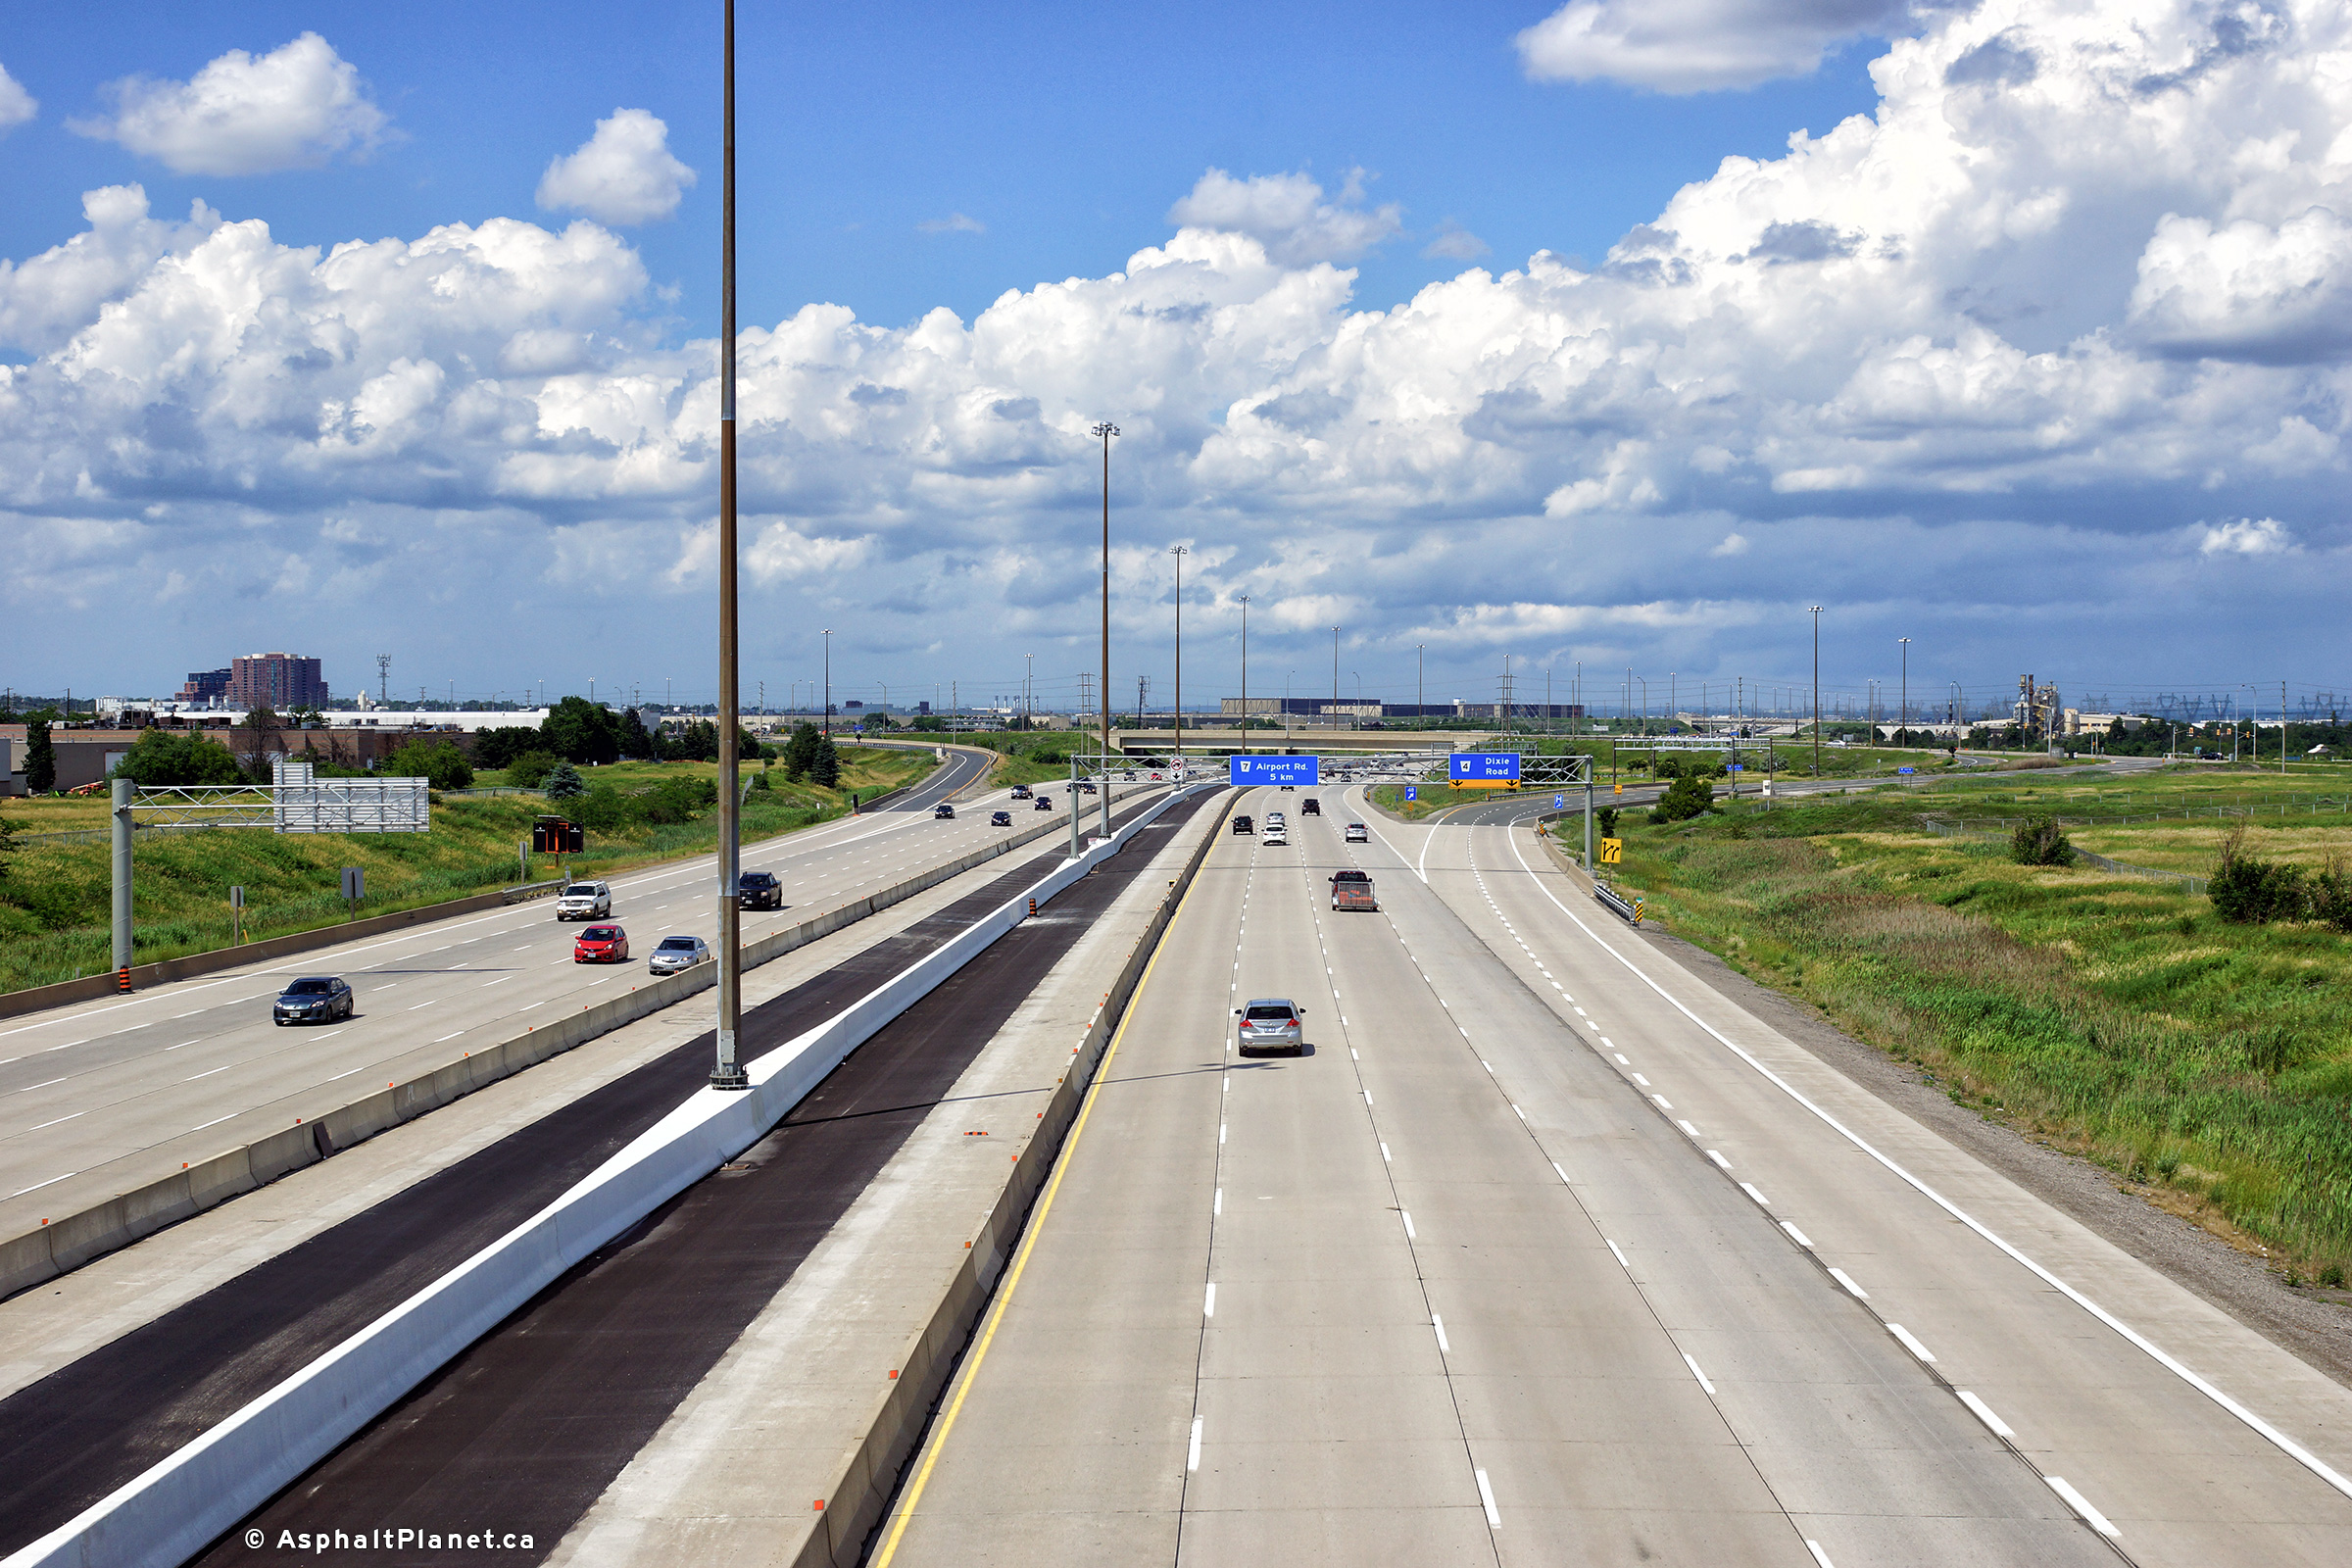 CDN] Canada | road infrastructure - Page 214 - SkyscraperCity